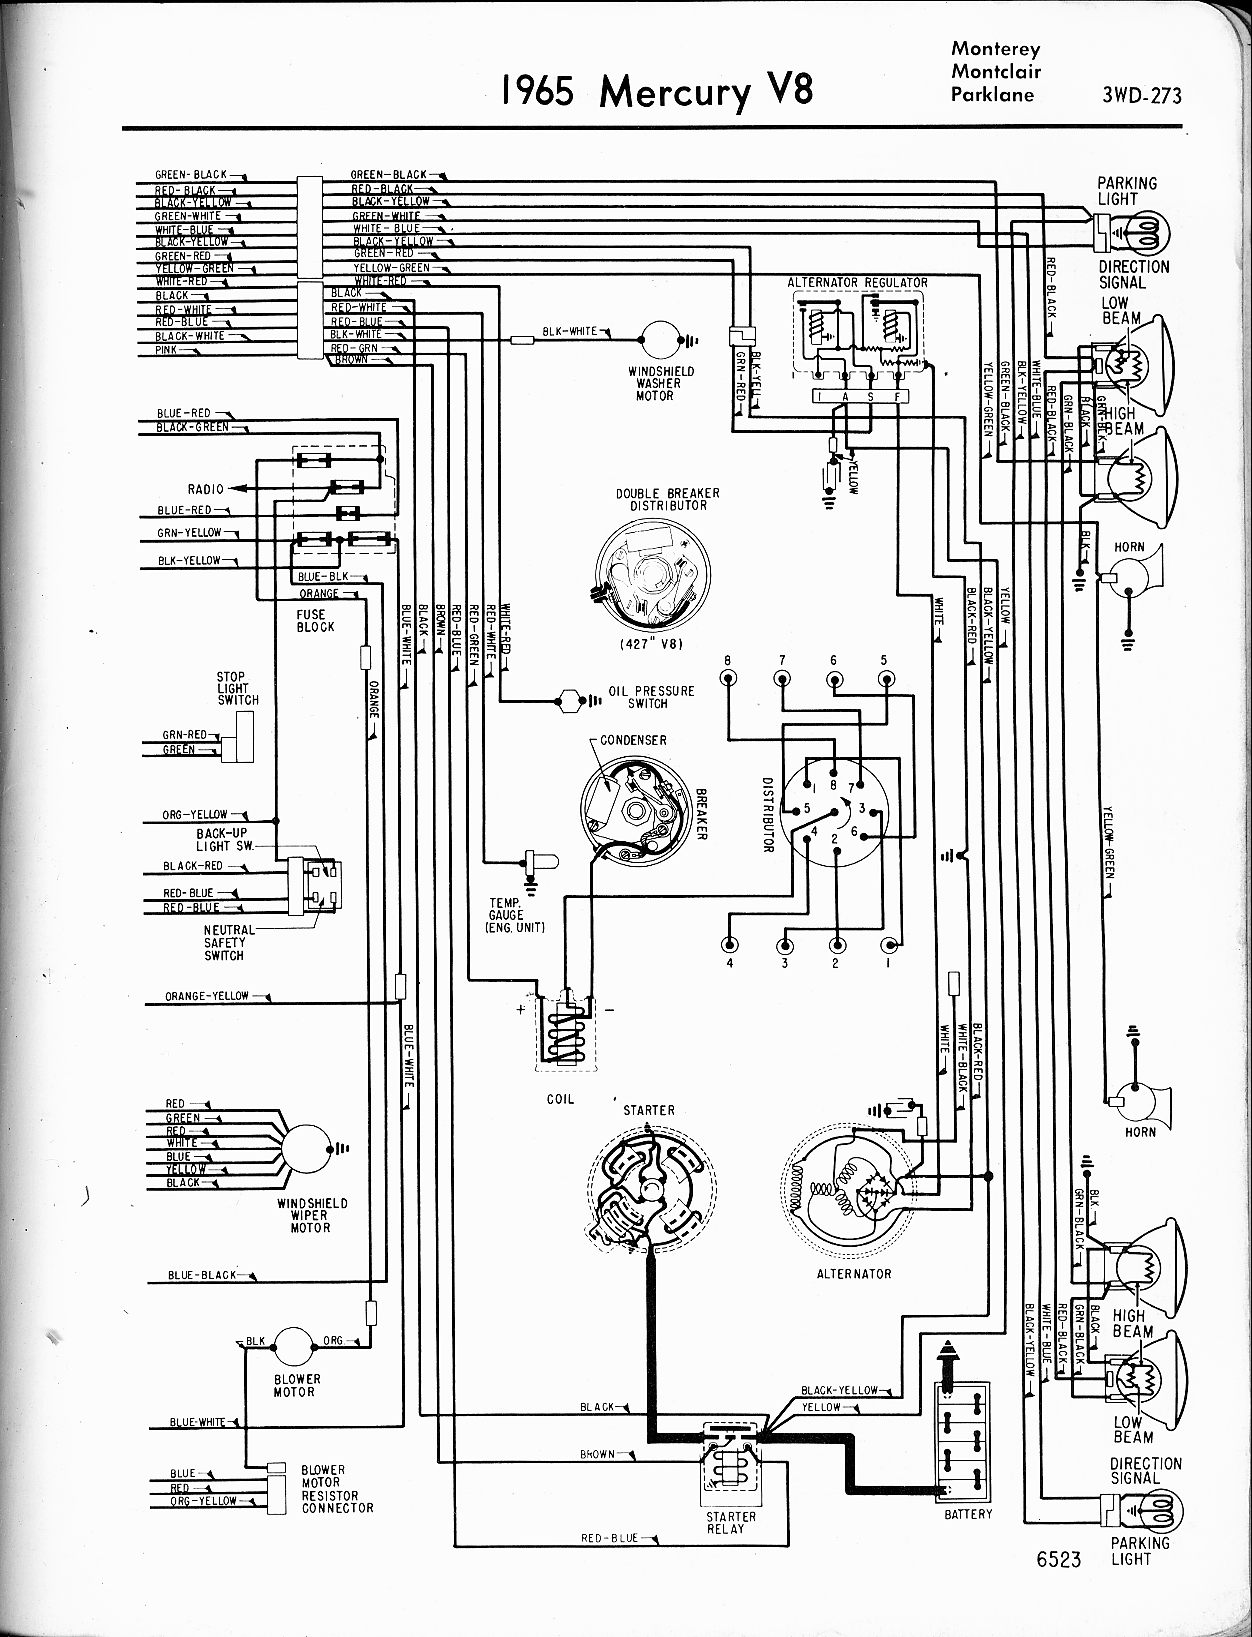 1968 Mustang Headlight Wiring Diagrams Library 1973 Fuse Box Mercury The Old Car Manual Project Rh Oldcarmanualproject Com Harness Diagram 1966